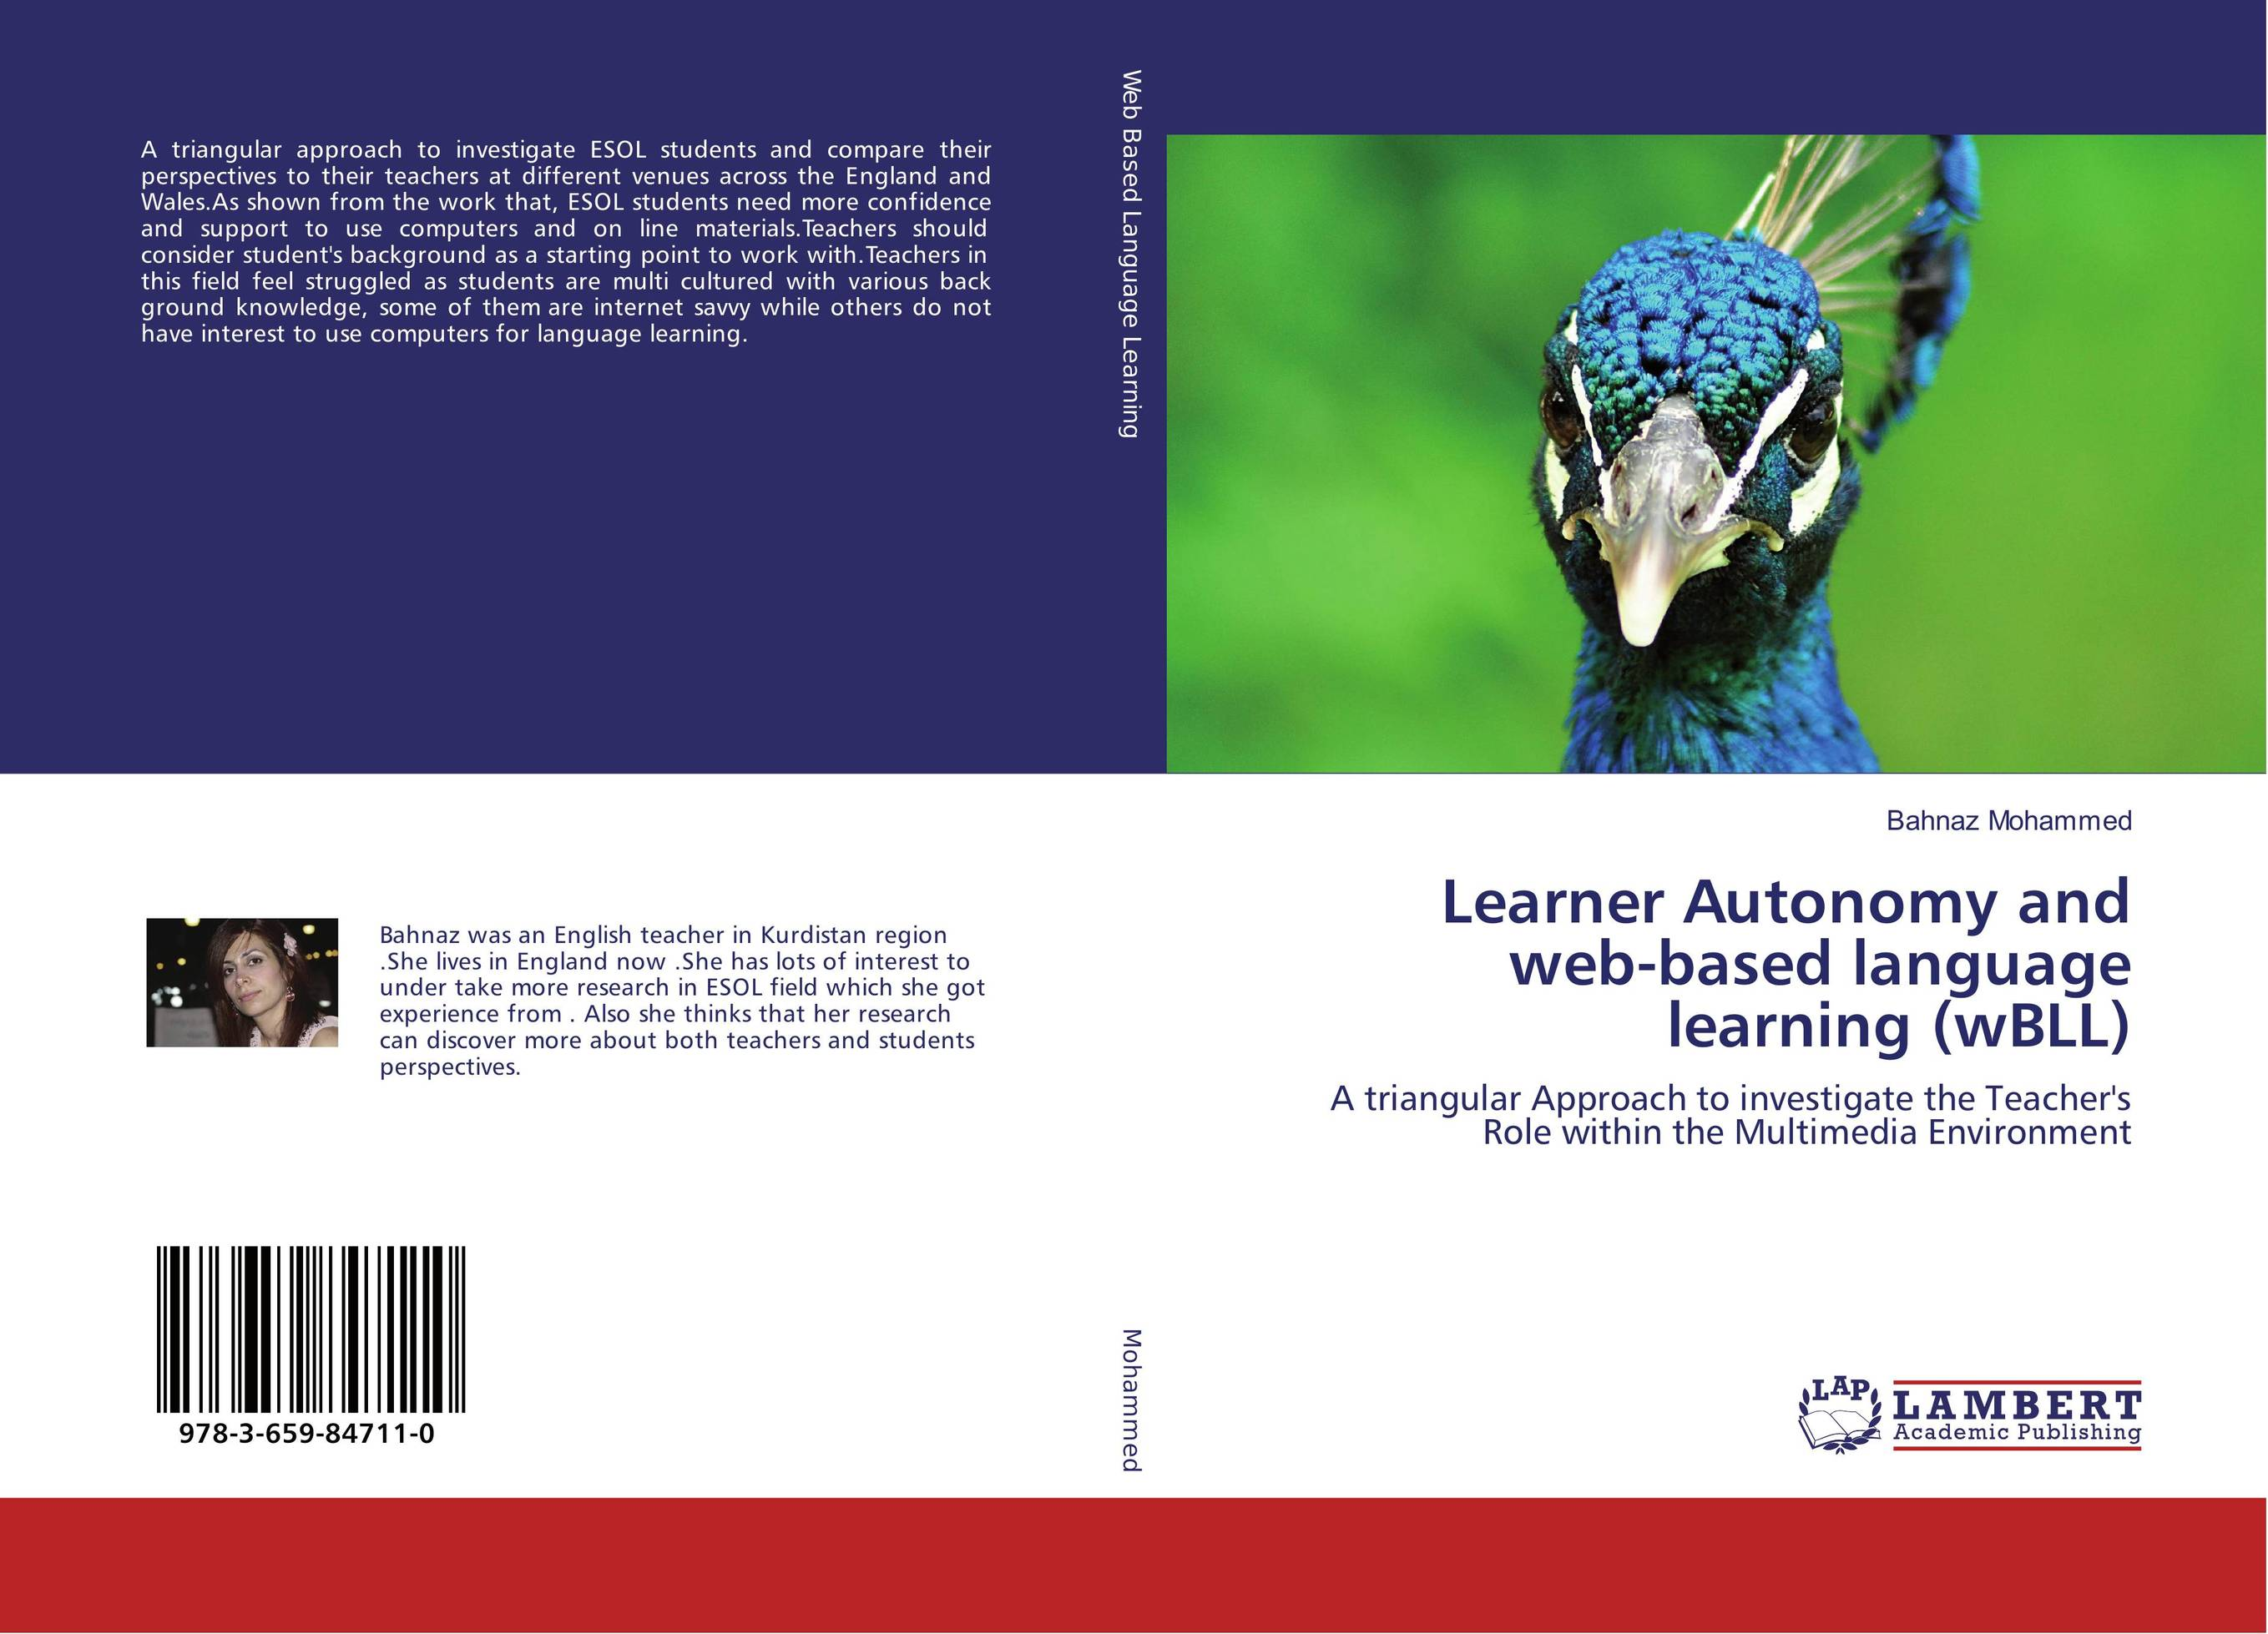 Learner Autonomy and web-based language learning (wBLL) ghada abdelhady new des based on elliptic curve